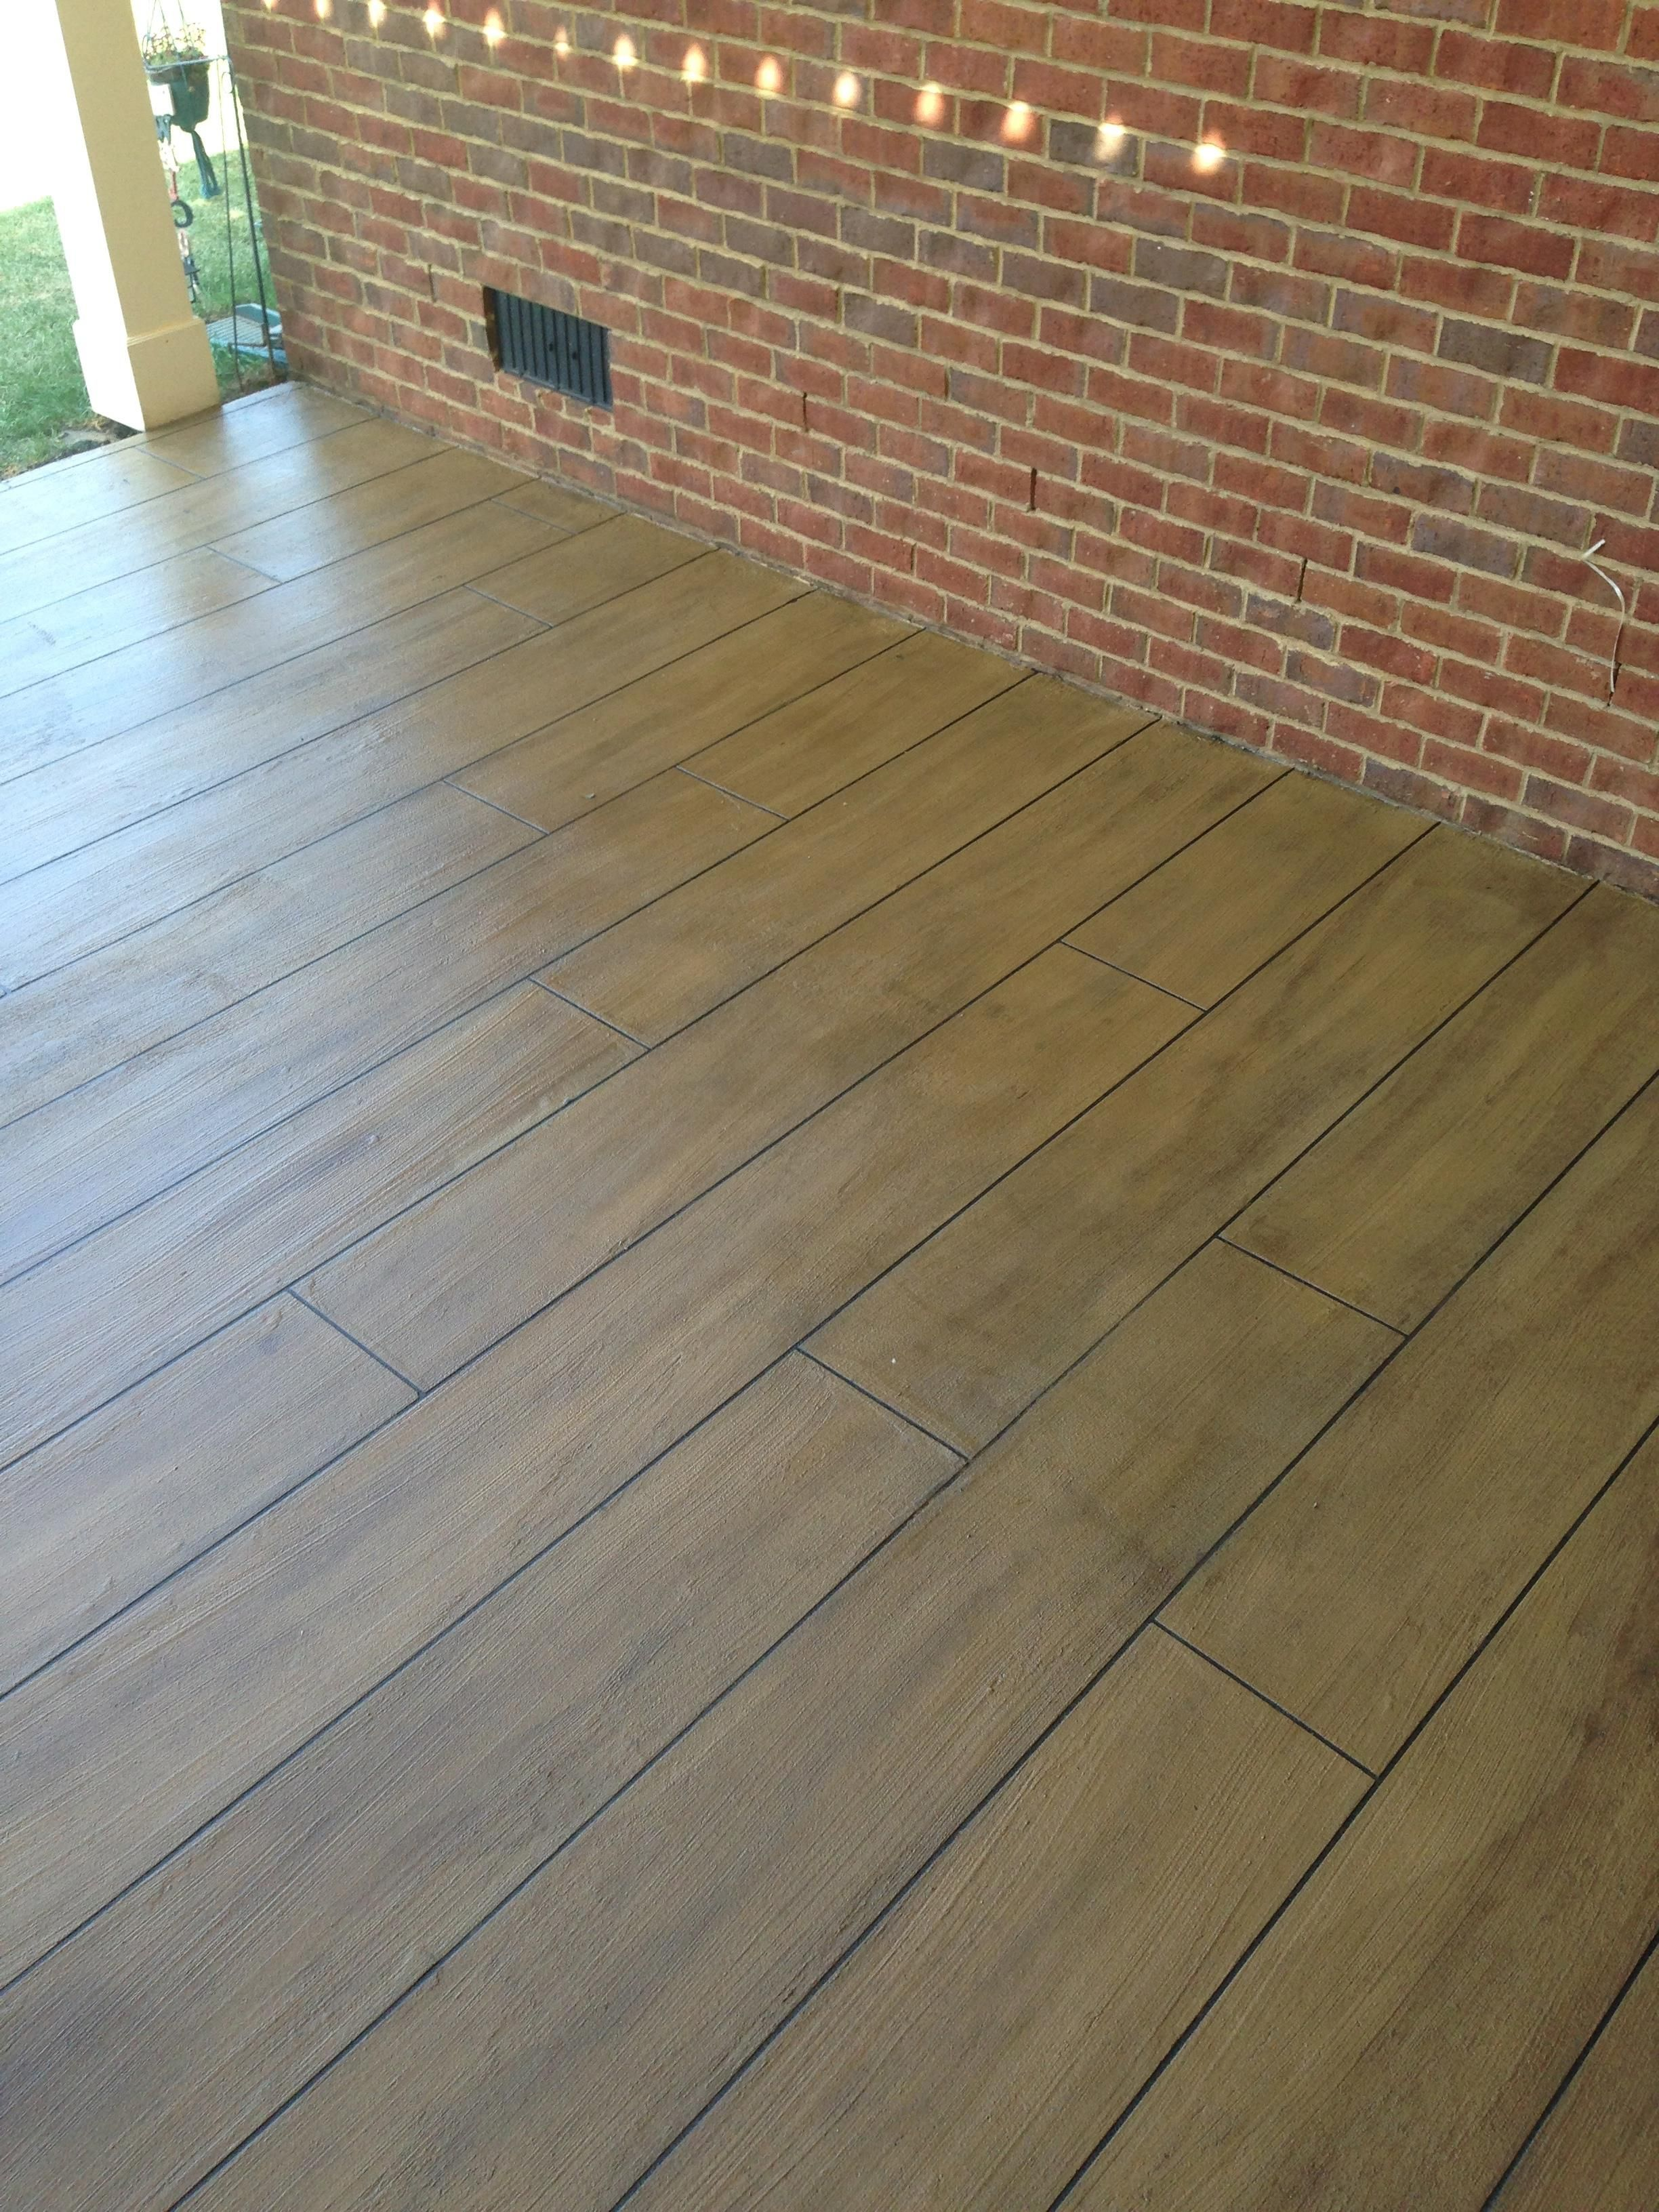 Cti S Concrete Coating Designed To Look Like Wood More Durable Easier To Maintain And Yes It S Concrete Concrete Coatings Concrete Concrete Floors